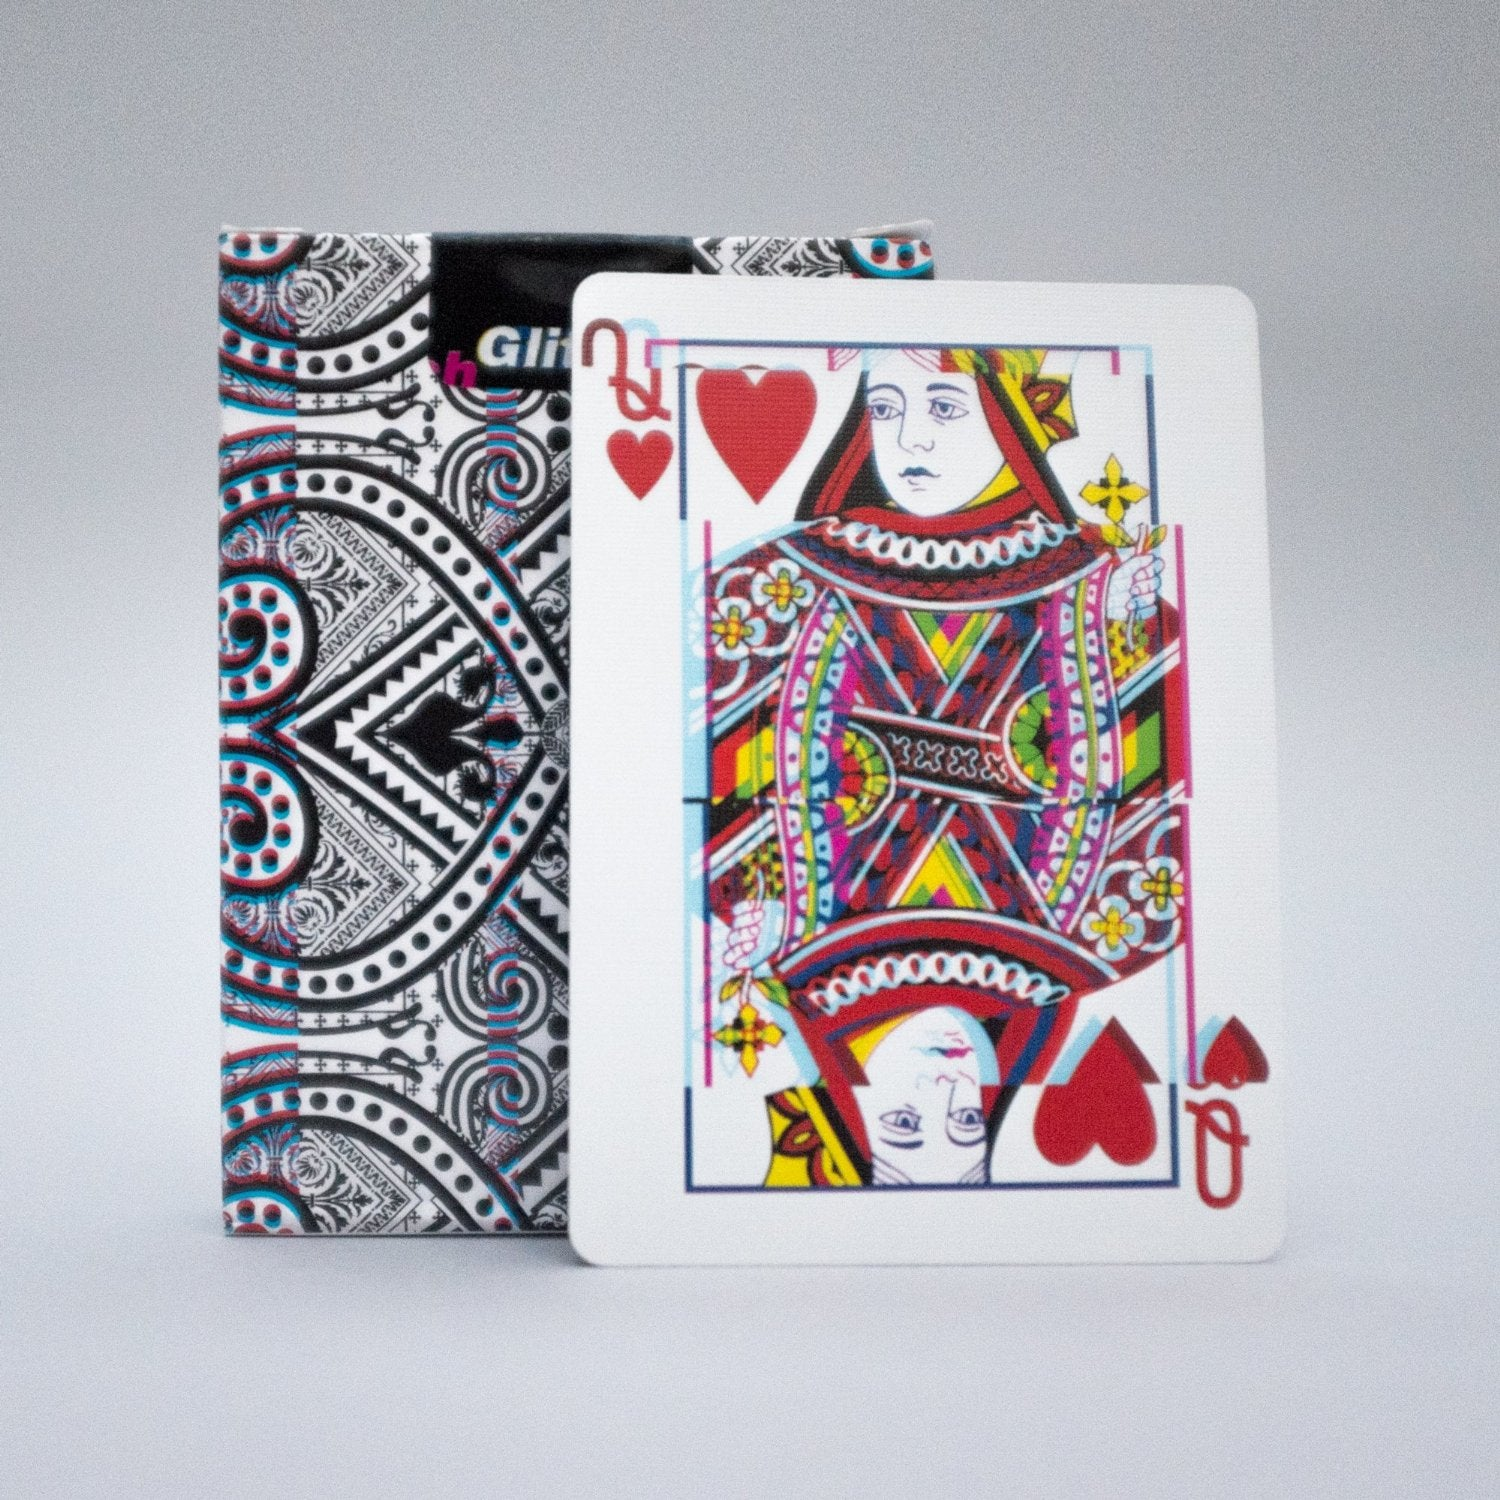 Get Trippy on Poker Night With These Glitch Playing Cards